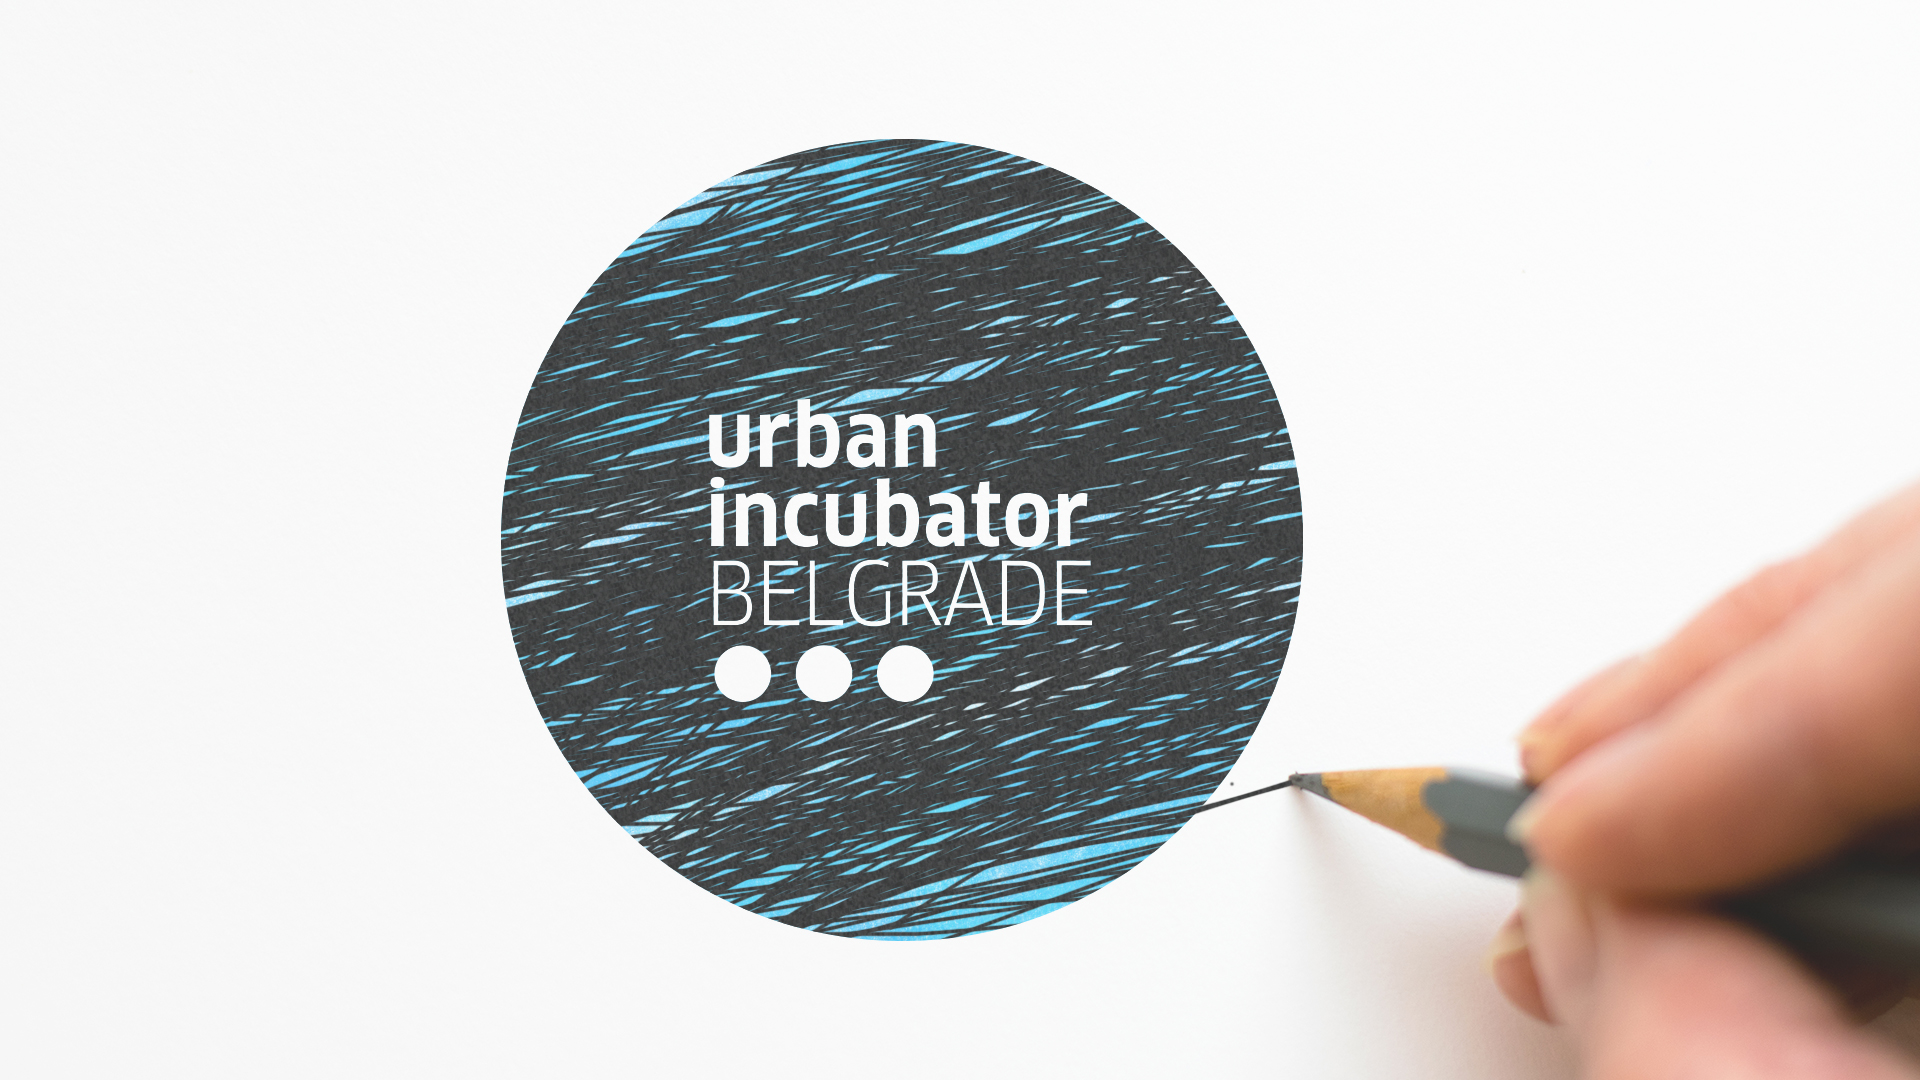 Urban Incubator Belgrade About